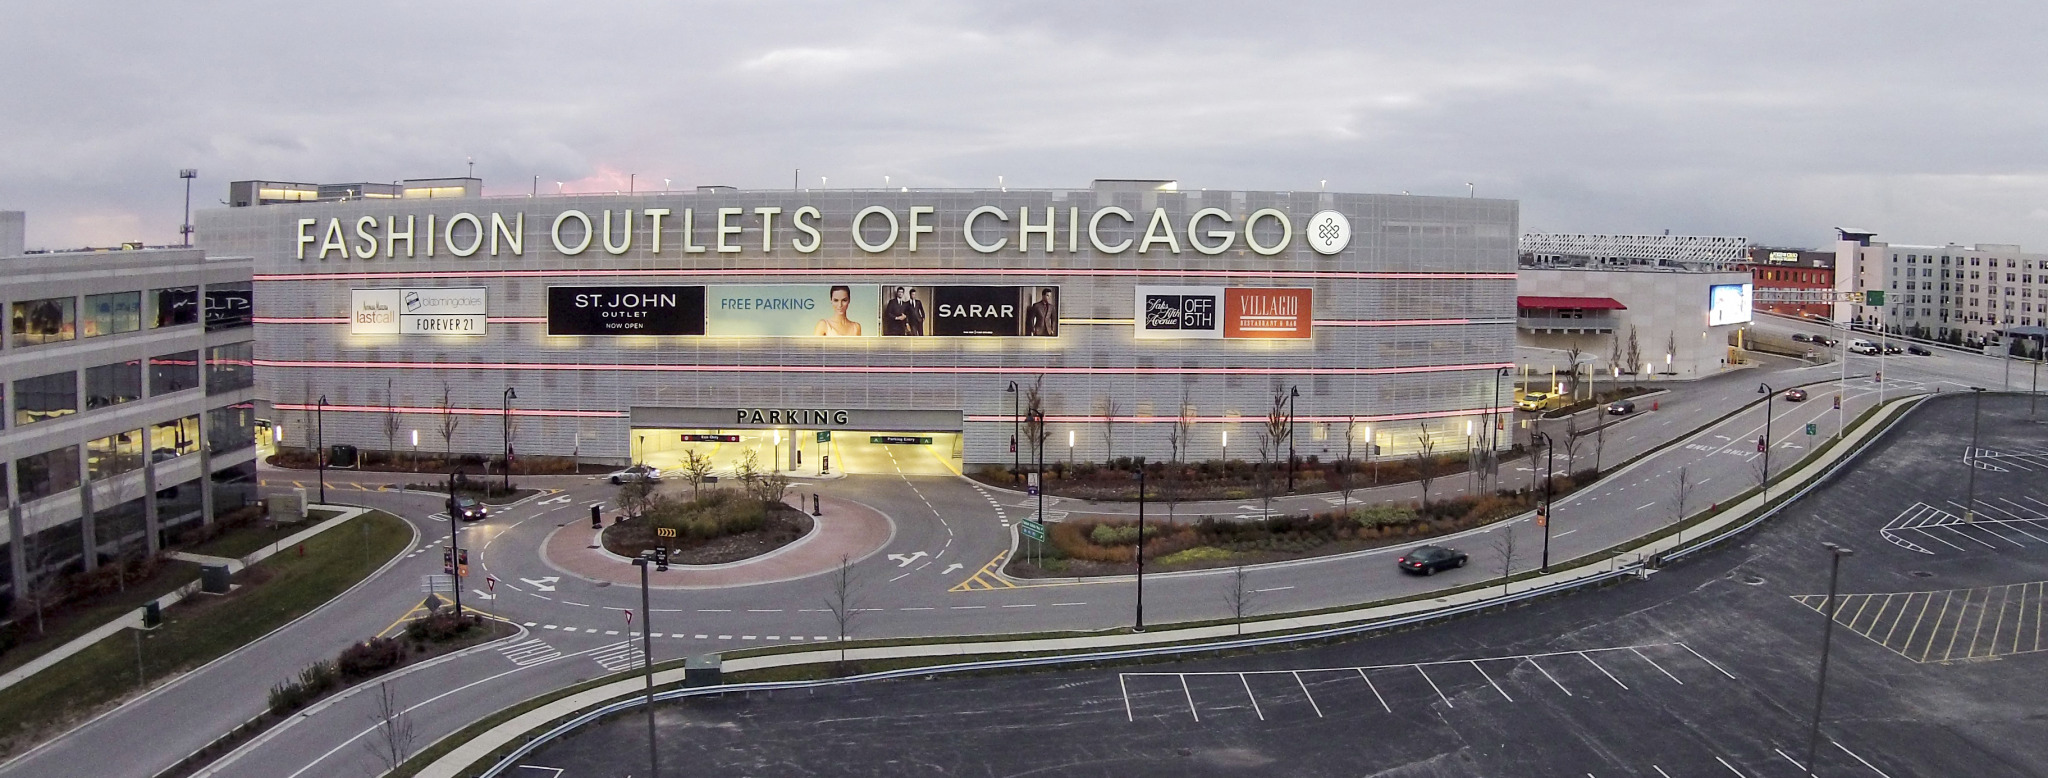 Fashion Outlets of Chicago: Luxe Shopping When You're Stuck at O'Hare